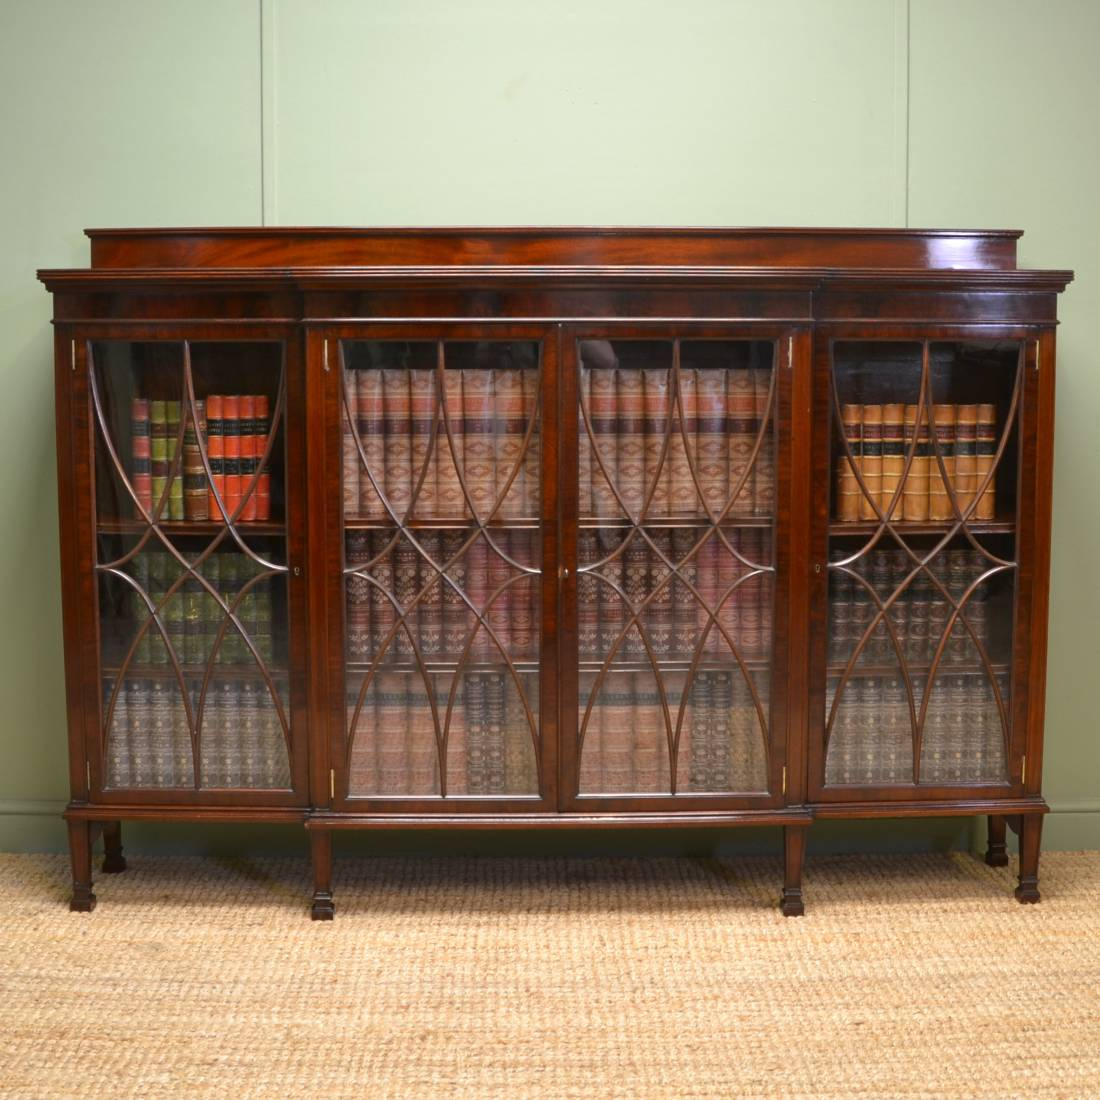 Spectacular Wylie & Lochhead Edwardian Break fronted Mahogany Antique Bookcase